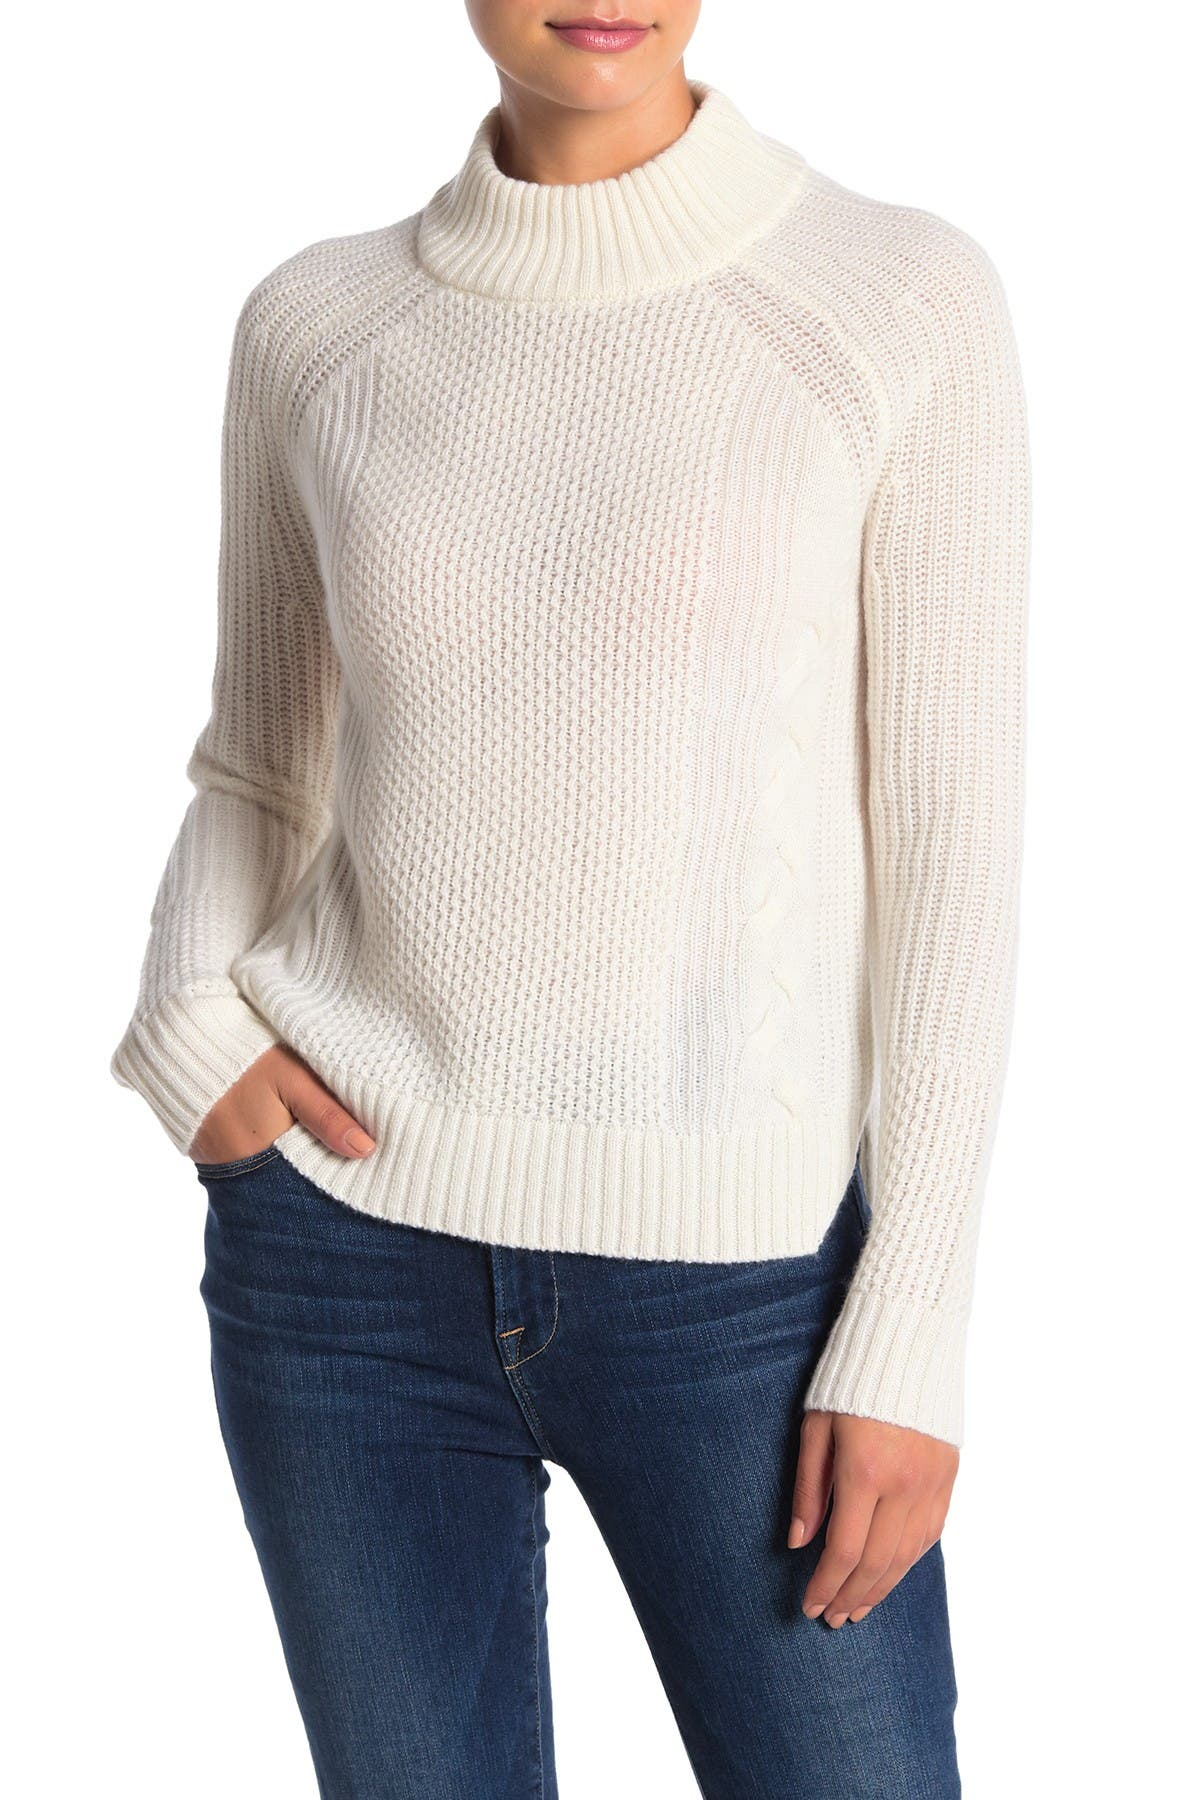 Image of GRIFFEN CASHMERE Cable Knit Cashmere Pullover